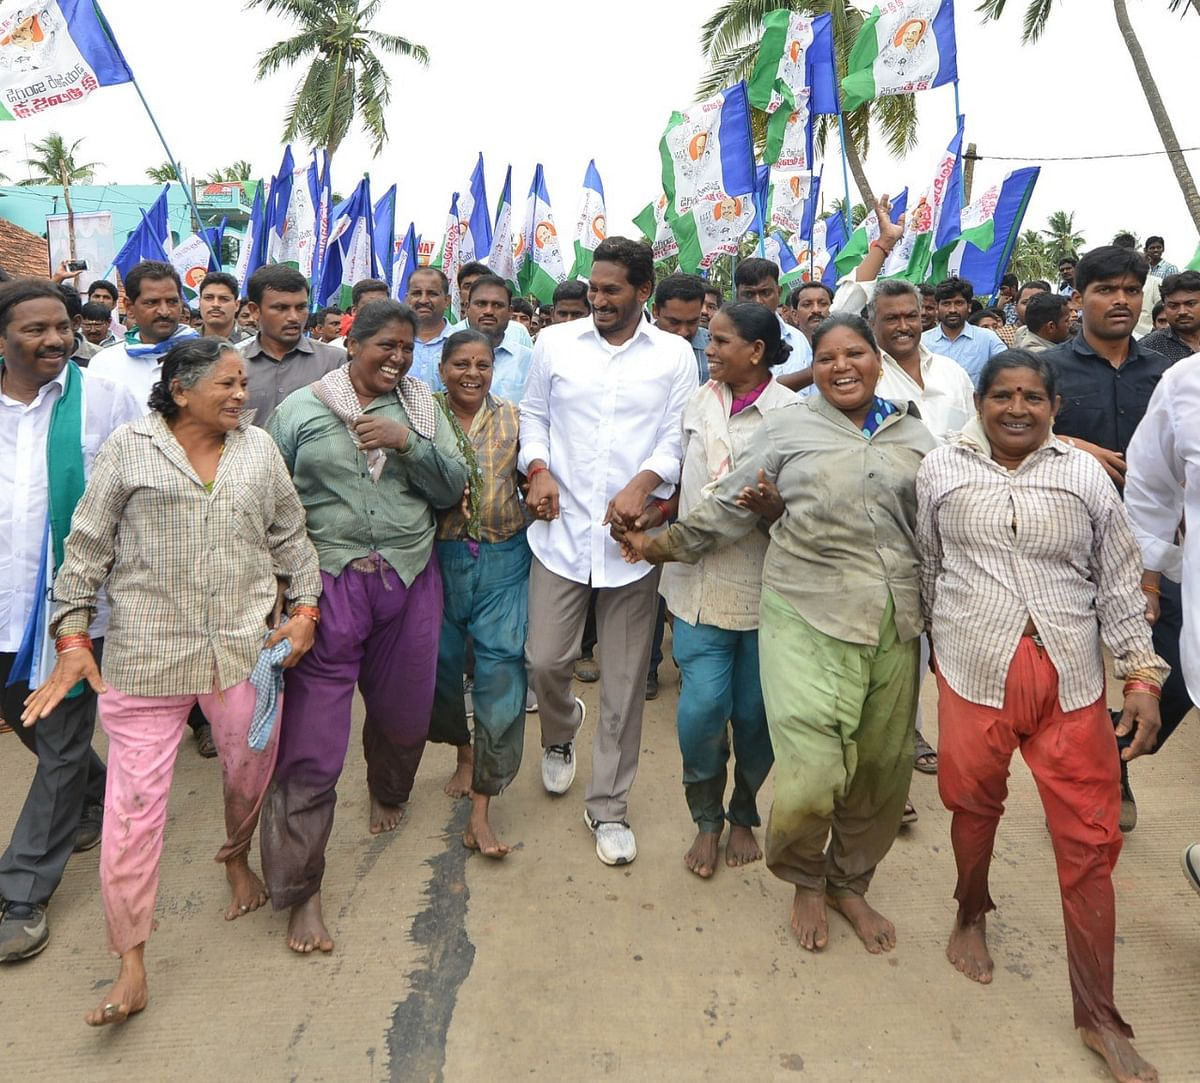 Jagan undertook a padayatra across the state from 6 November 2017 to 9 January 2019.